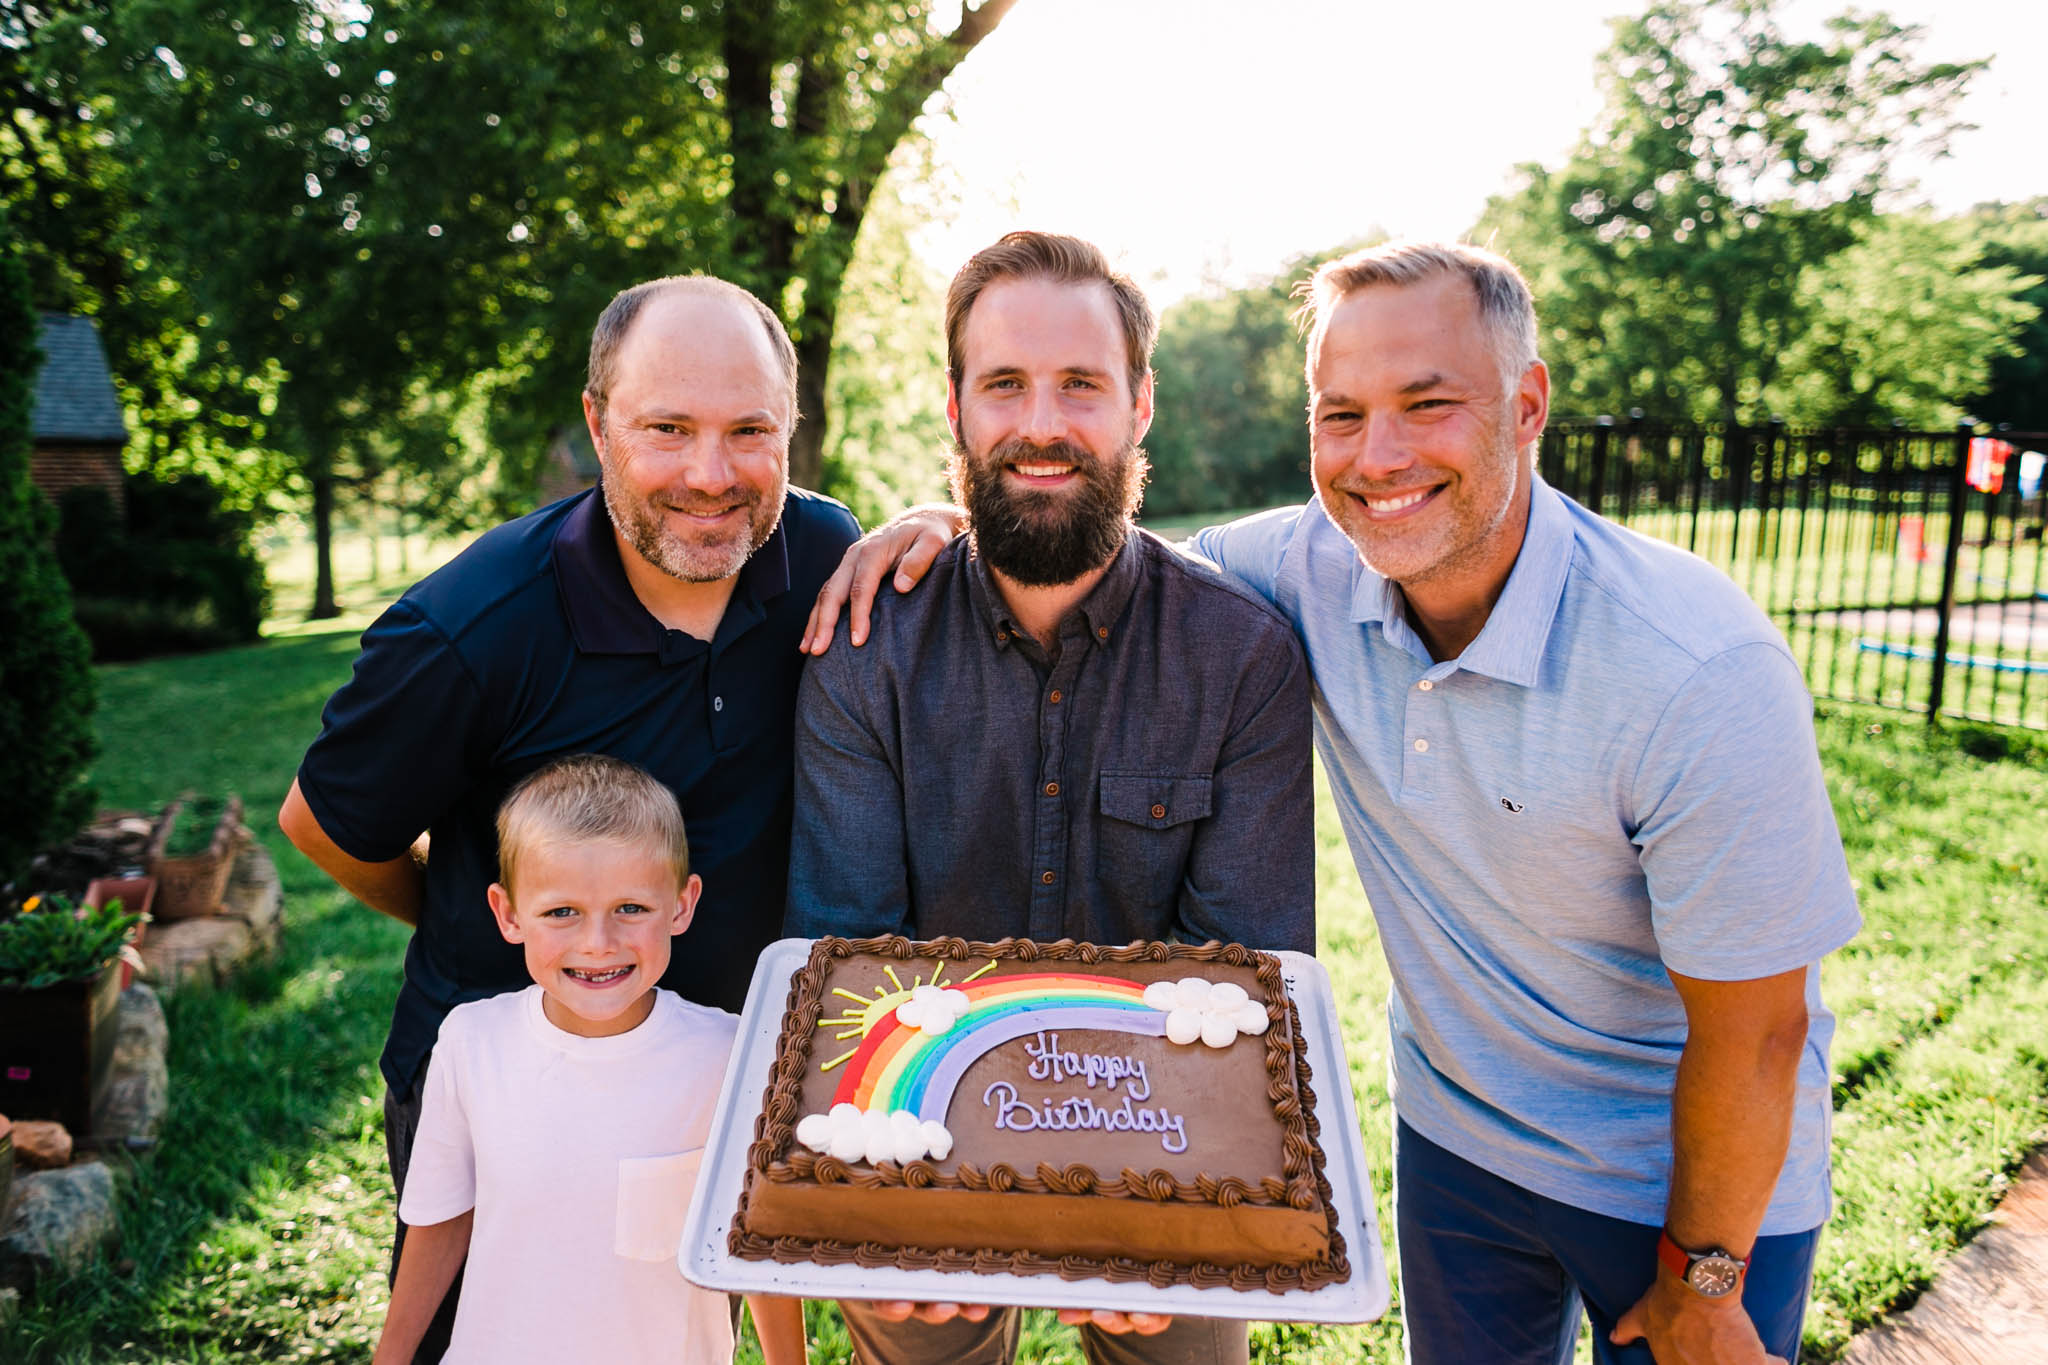 Durham Family Photographer | By G. Lin Photography | Portrait of brothers and son with birthday cake